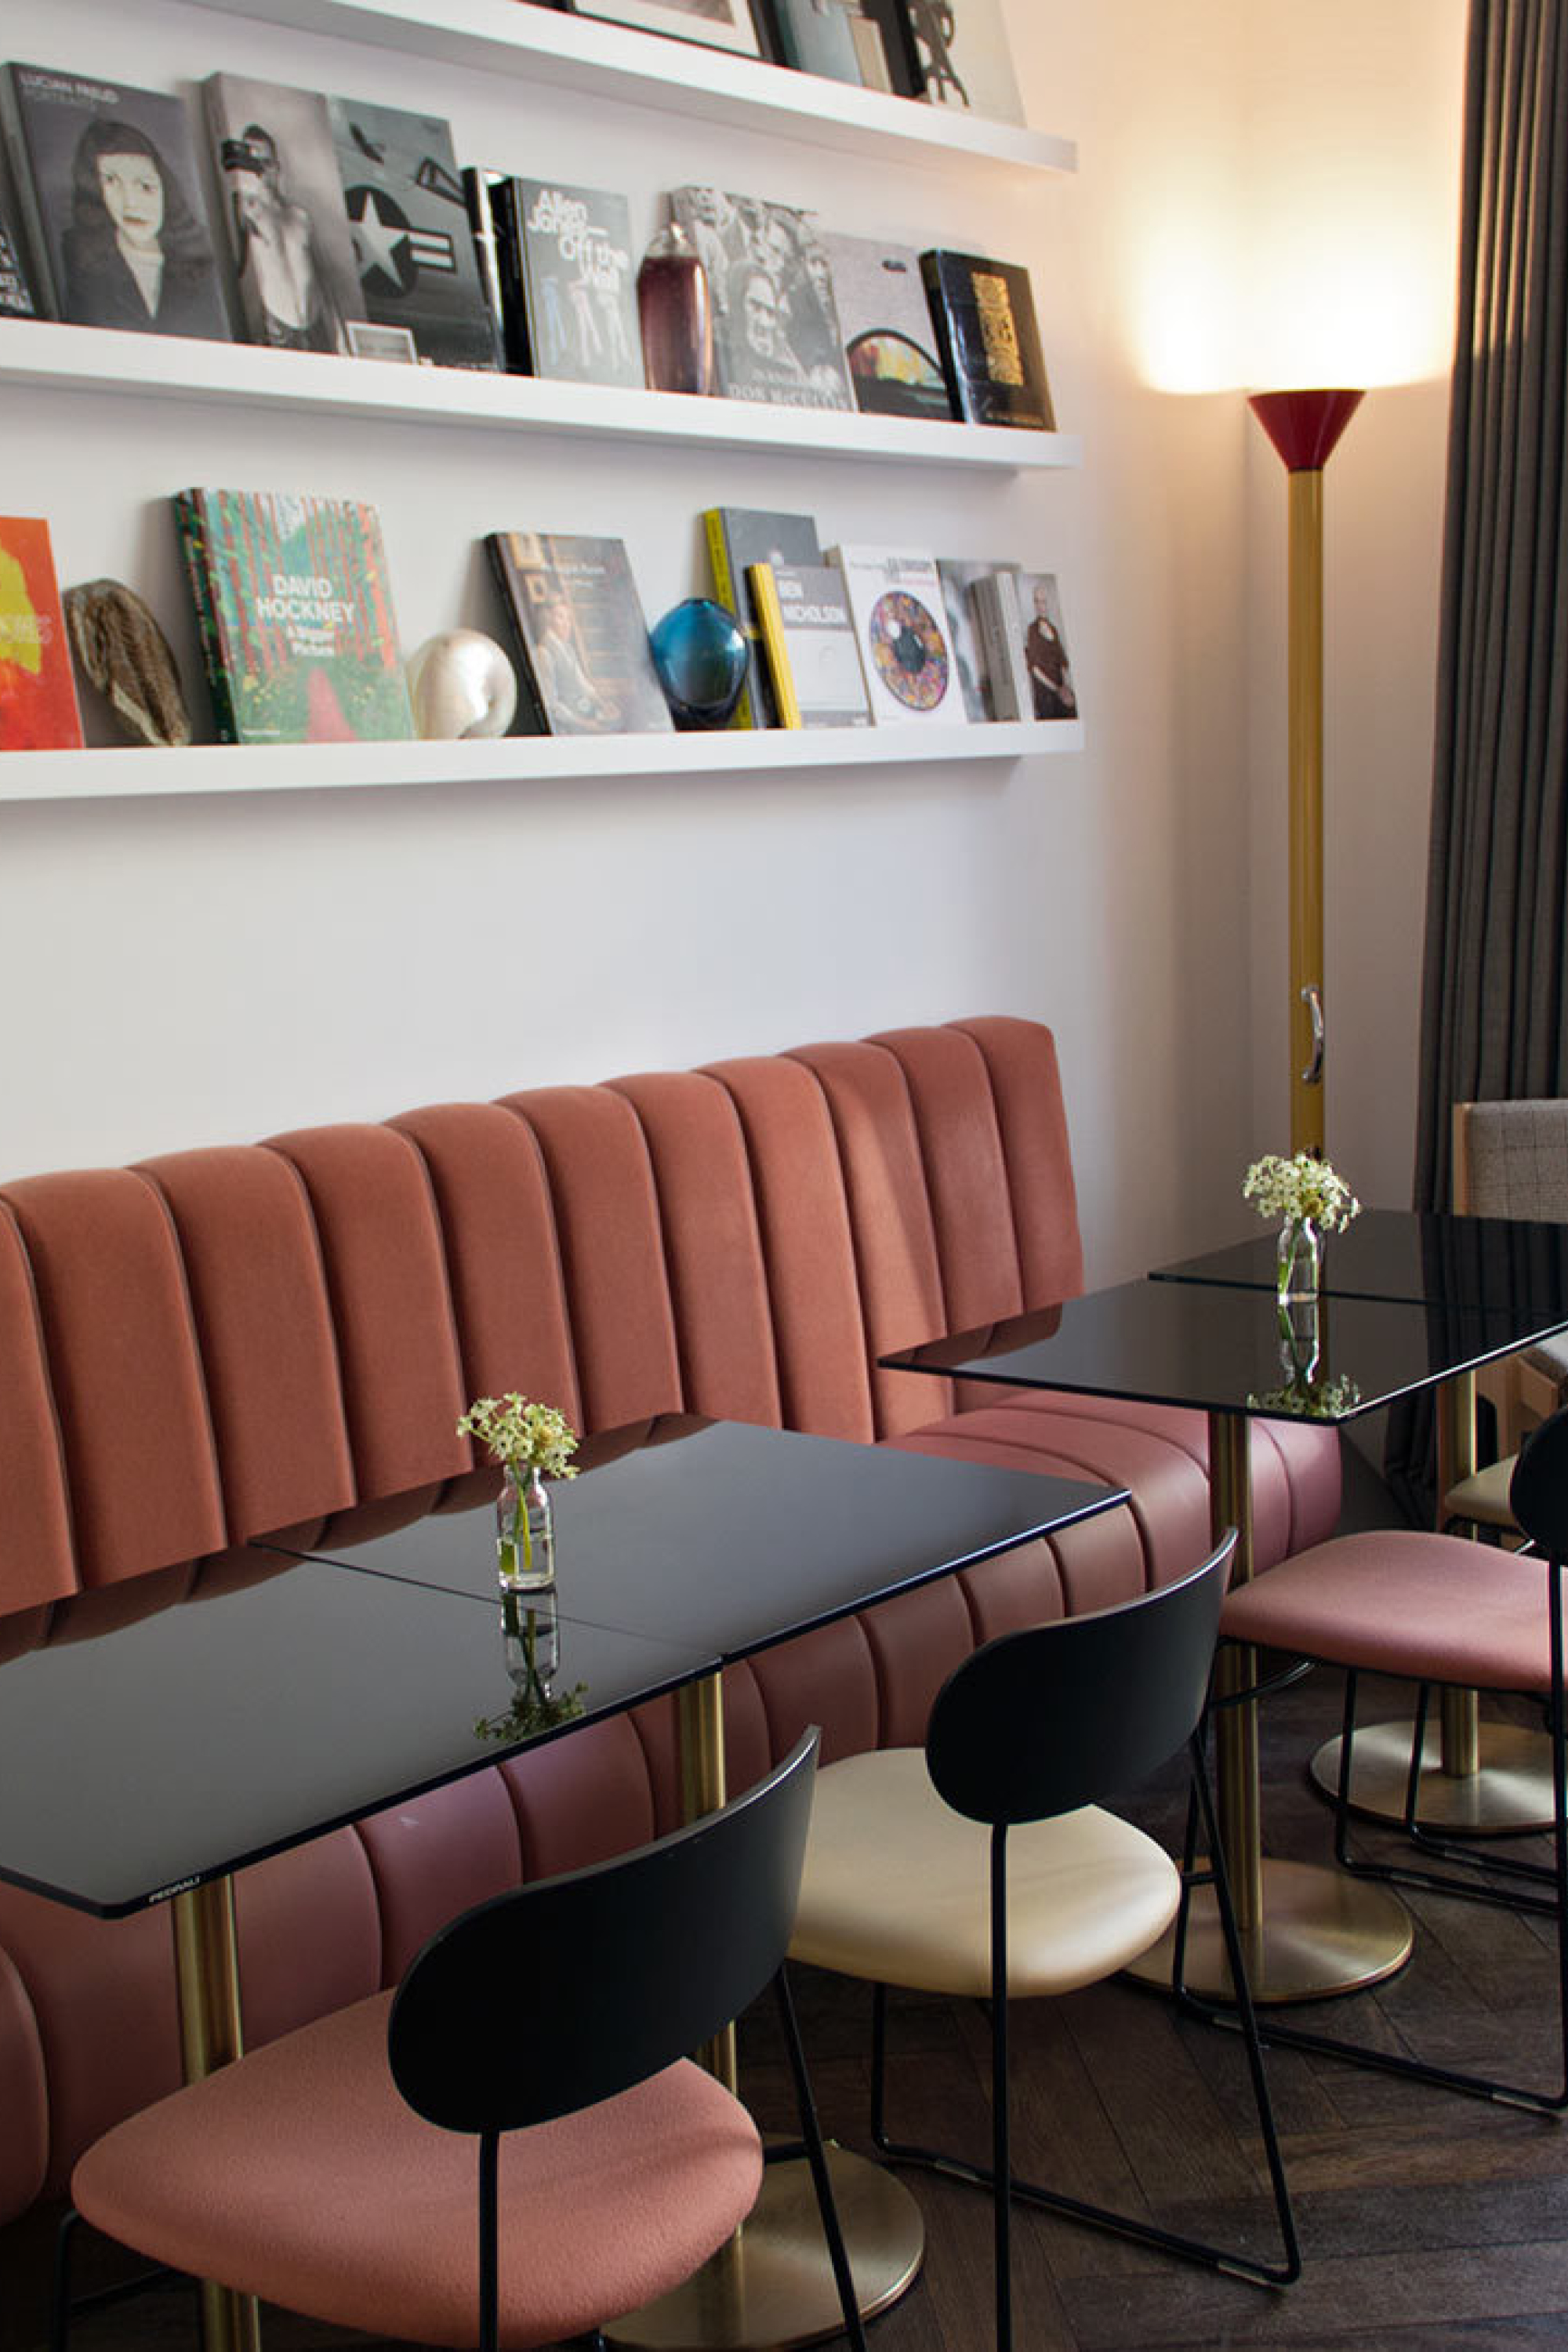 The Laslett- London,Notting Hill  Images by Nara Shin on Cool Hunting